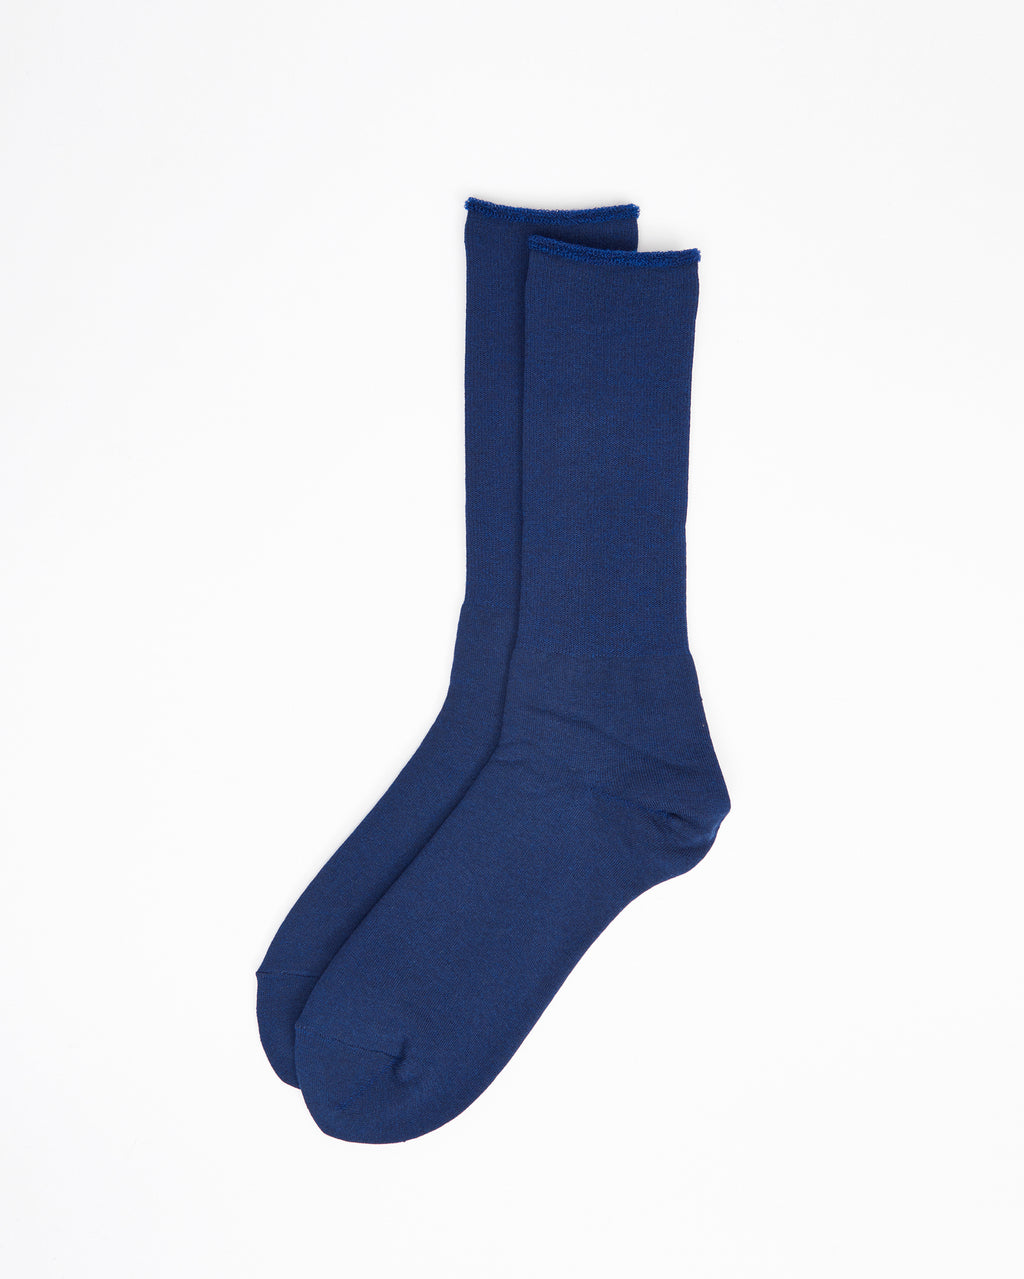 City Socks High Pile – Navy